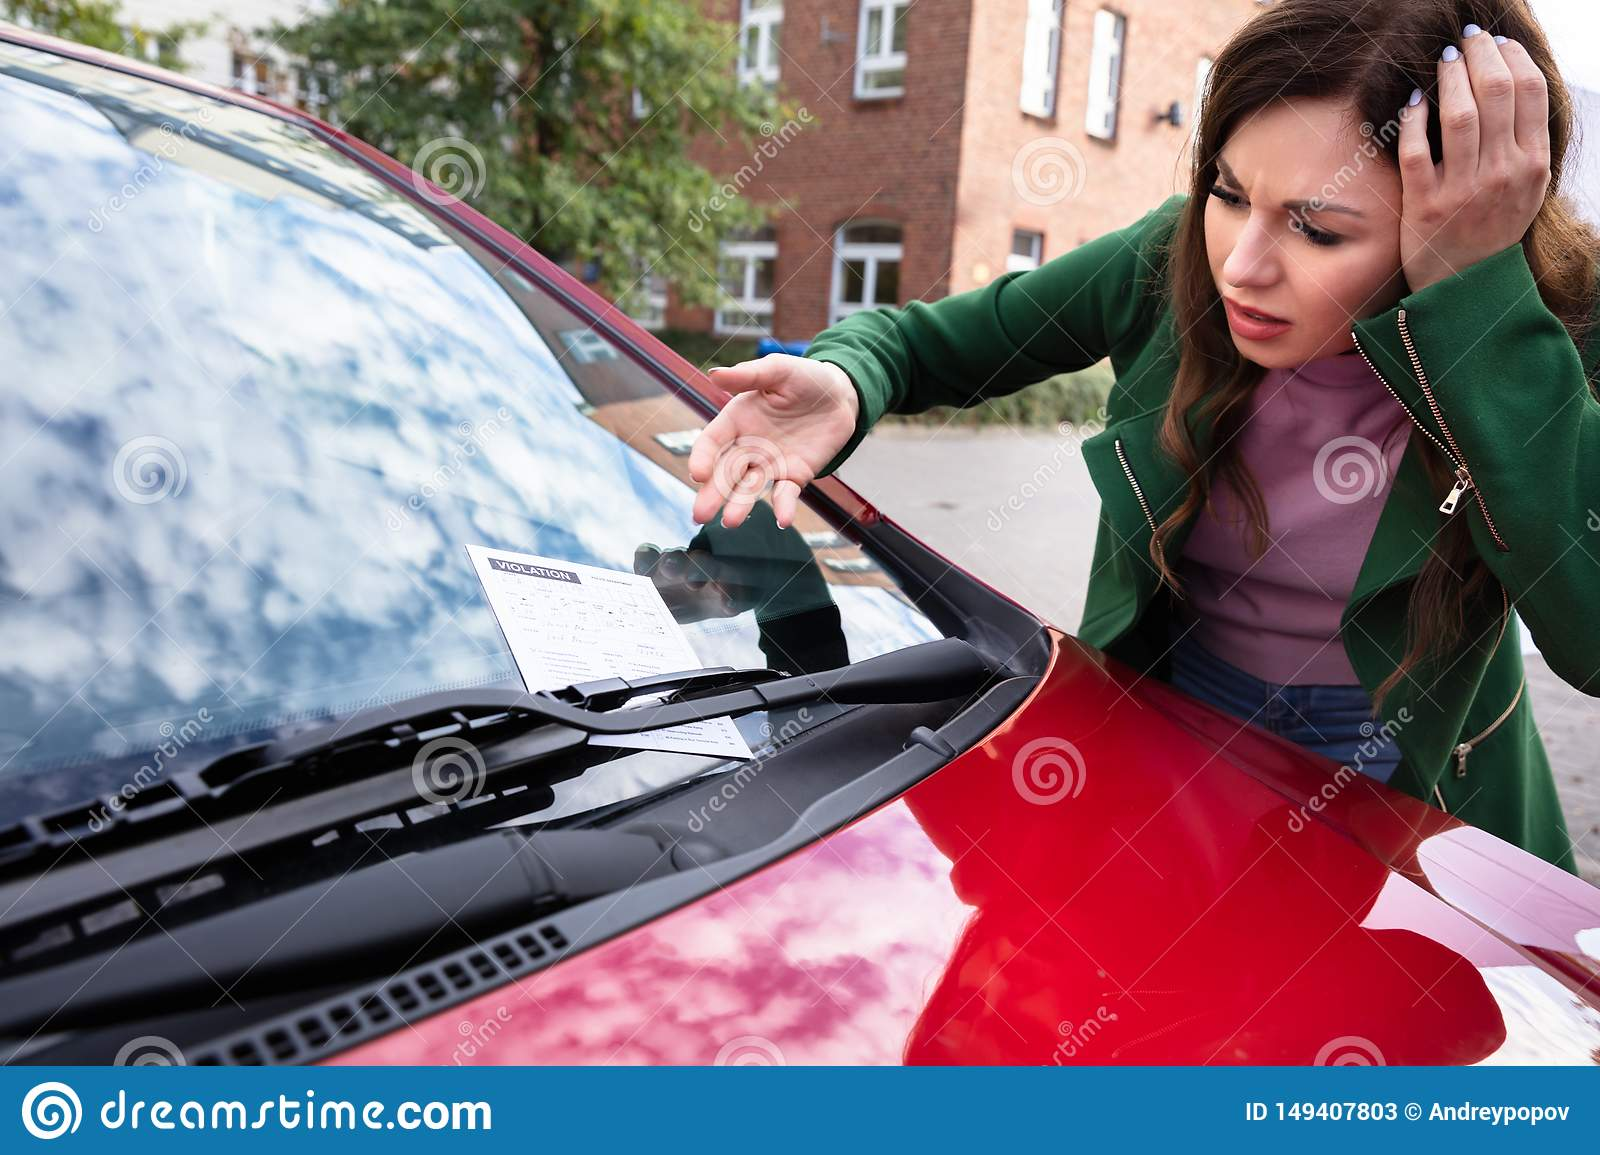 Woman Looking At Ticket Fine For Parking Violation On Car